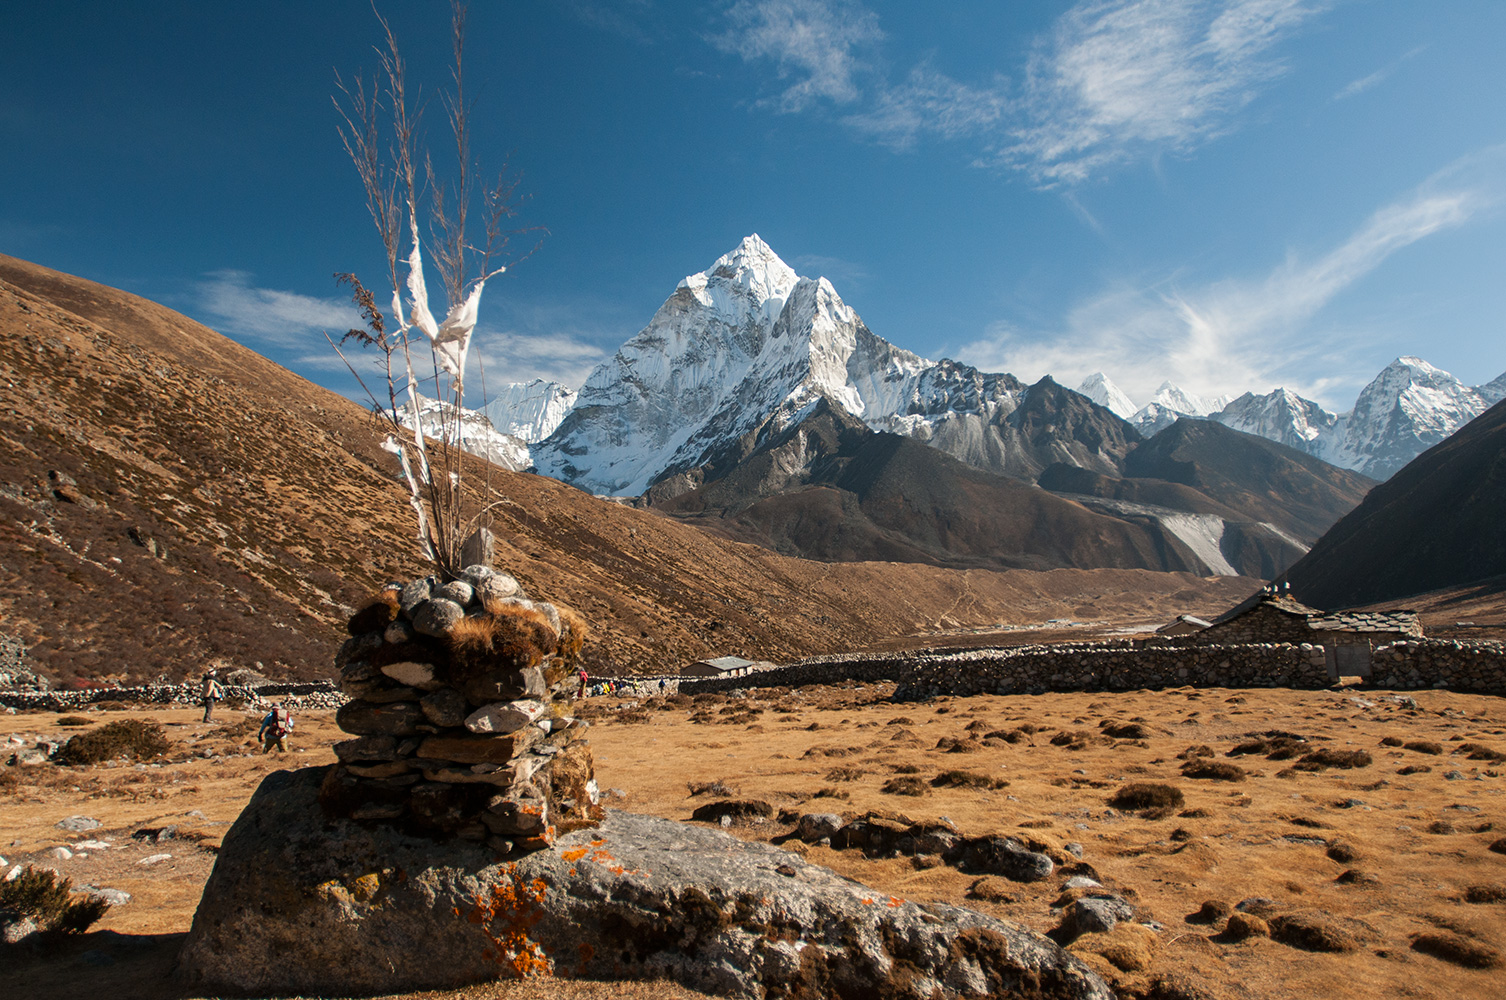 Ama Dablam, Melanphulan & Thamserku dominating the magnificent skyline south of the village of Periche (4240m)Nikon D300, 17-35mm. December 2008